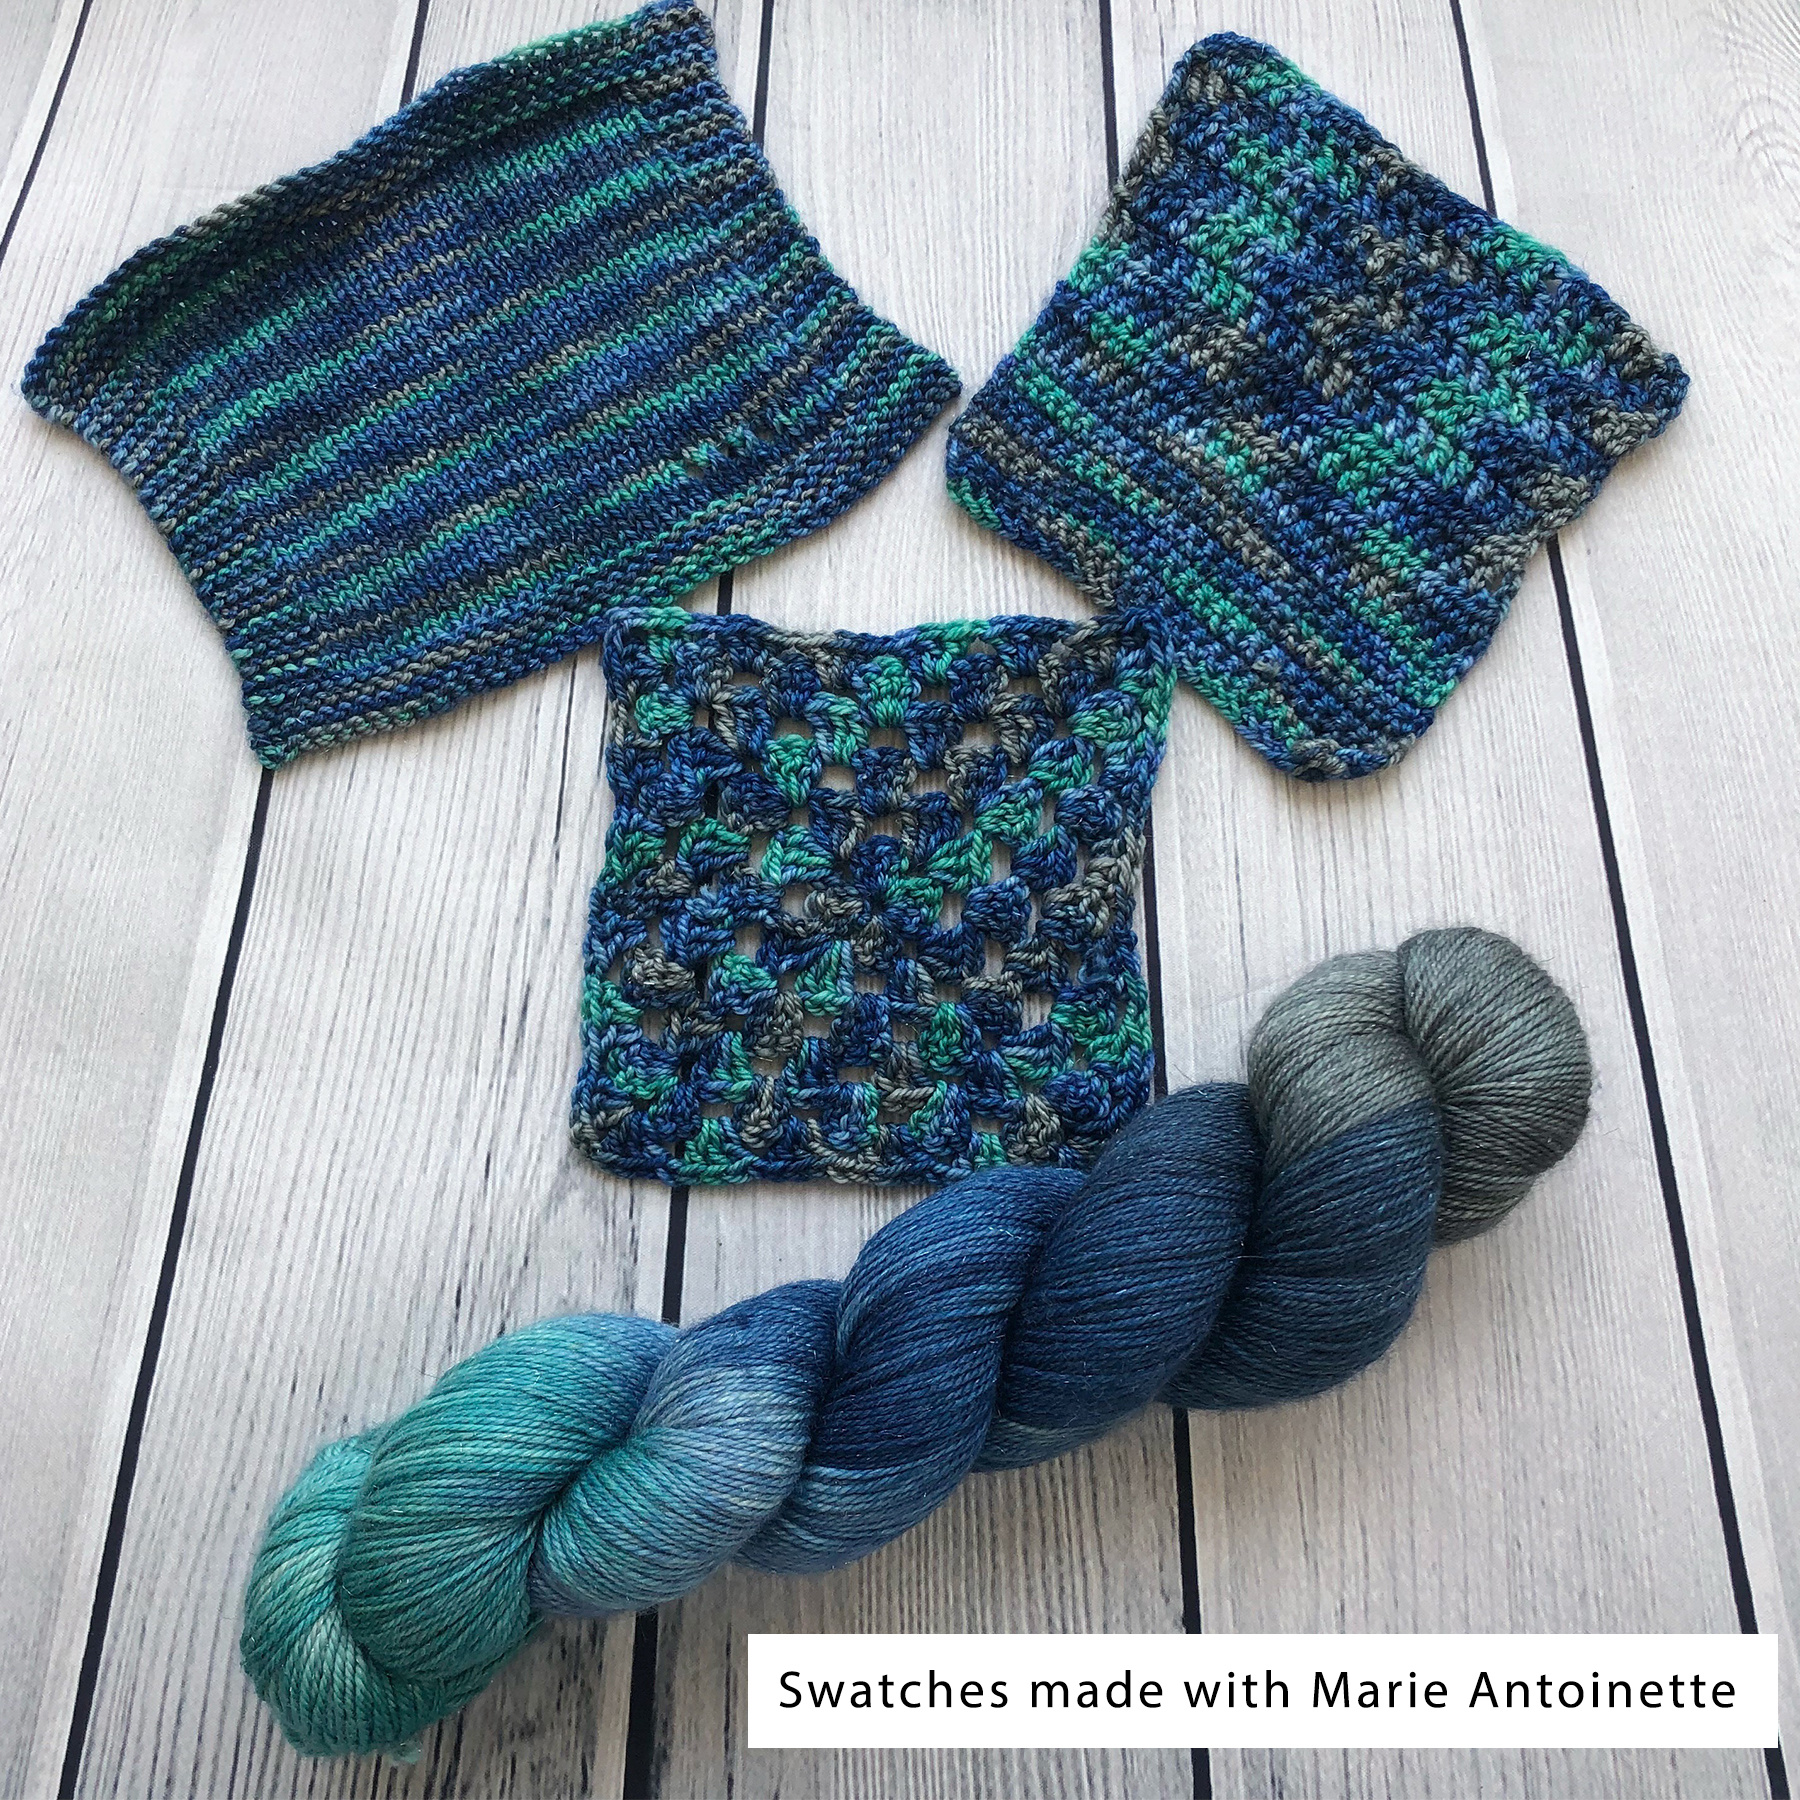 Yarn Love Beneath The Waves on Princess Buttercup Worsted from Yarn Love